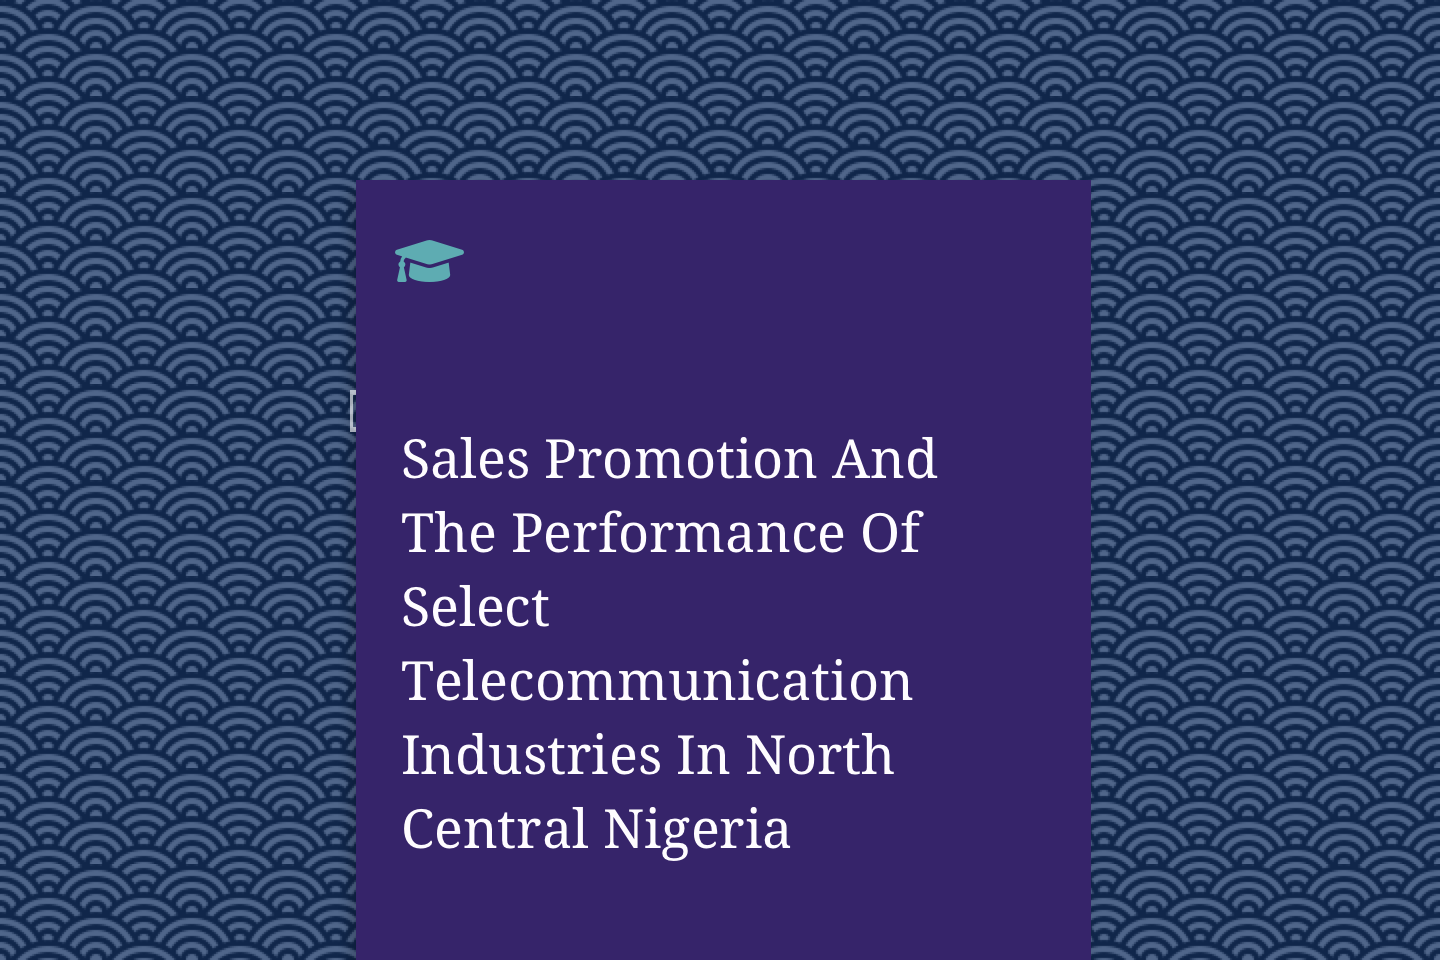 Sales Promotion And The Performance Of Select Telecommunication Industries In North Central Nigeria